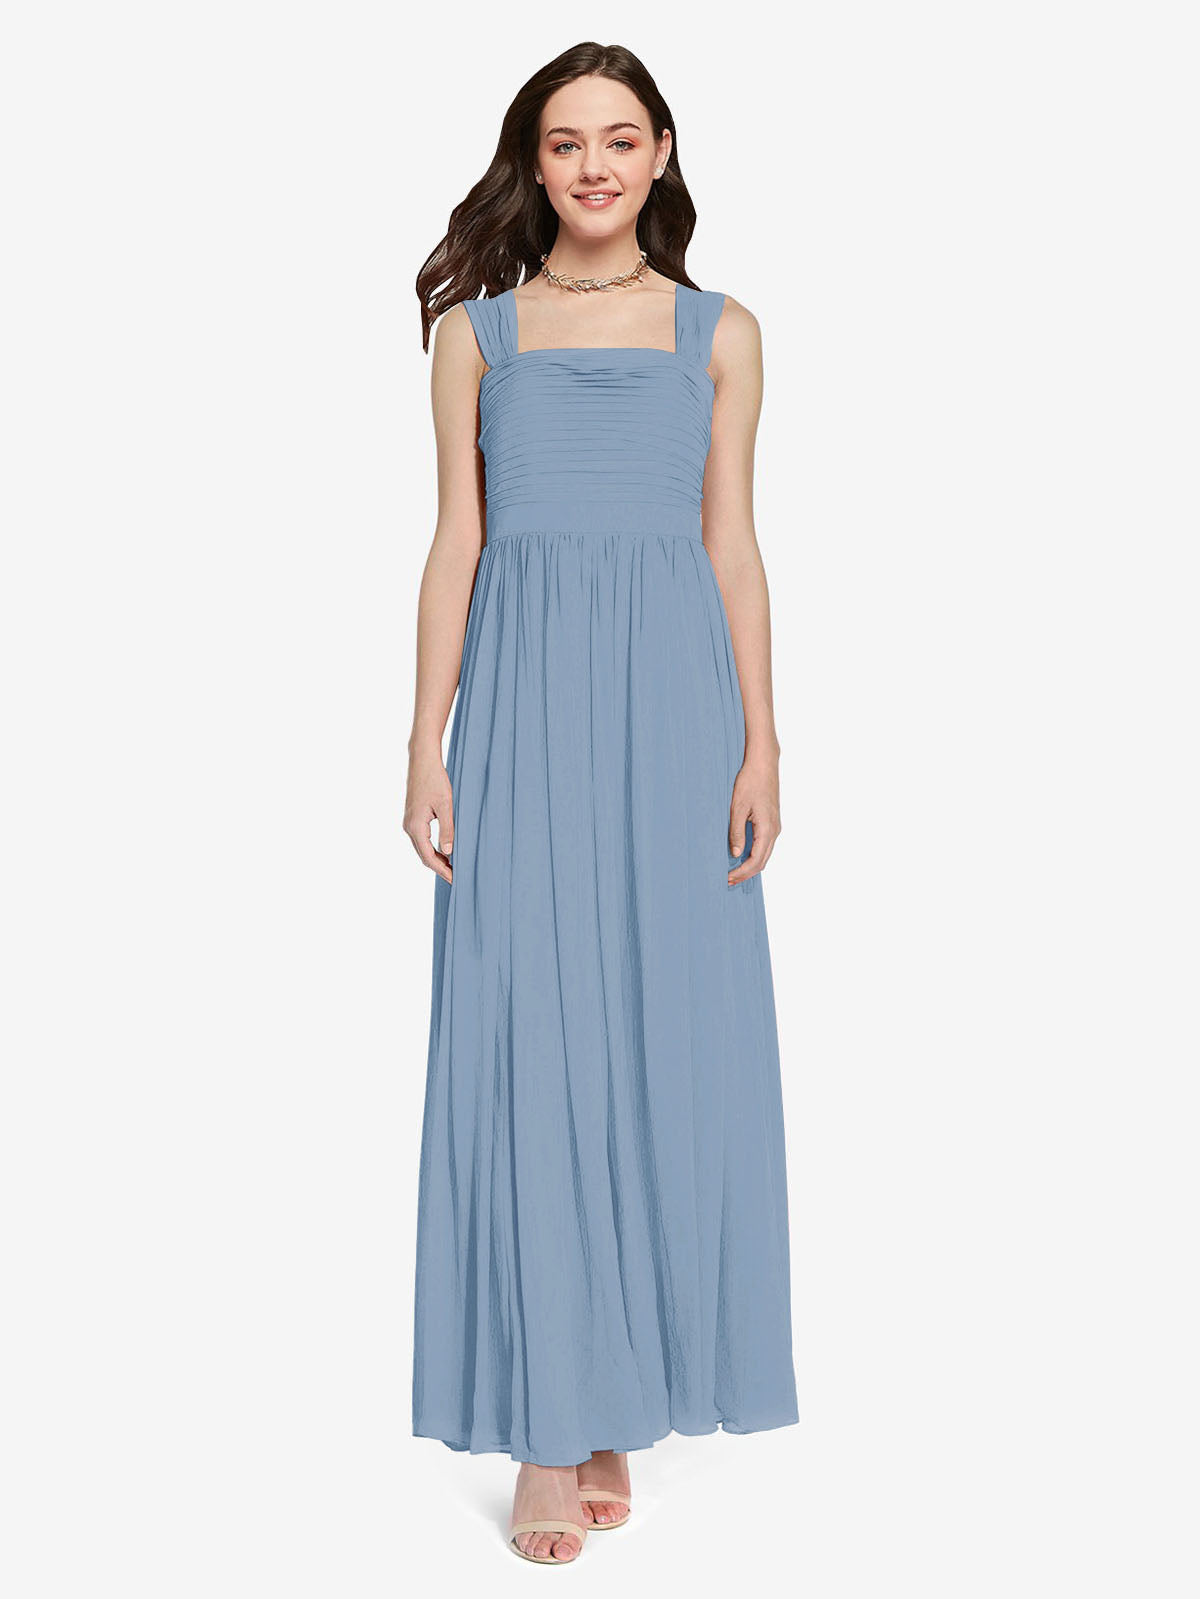 Long A-Line Square Sleeveless Dusty Blue Chiffon Bridesmaid Dress Aldridge